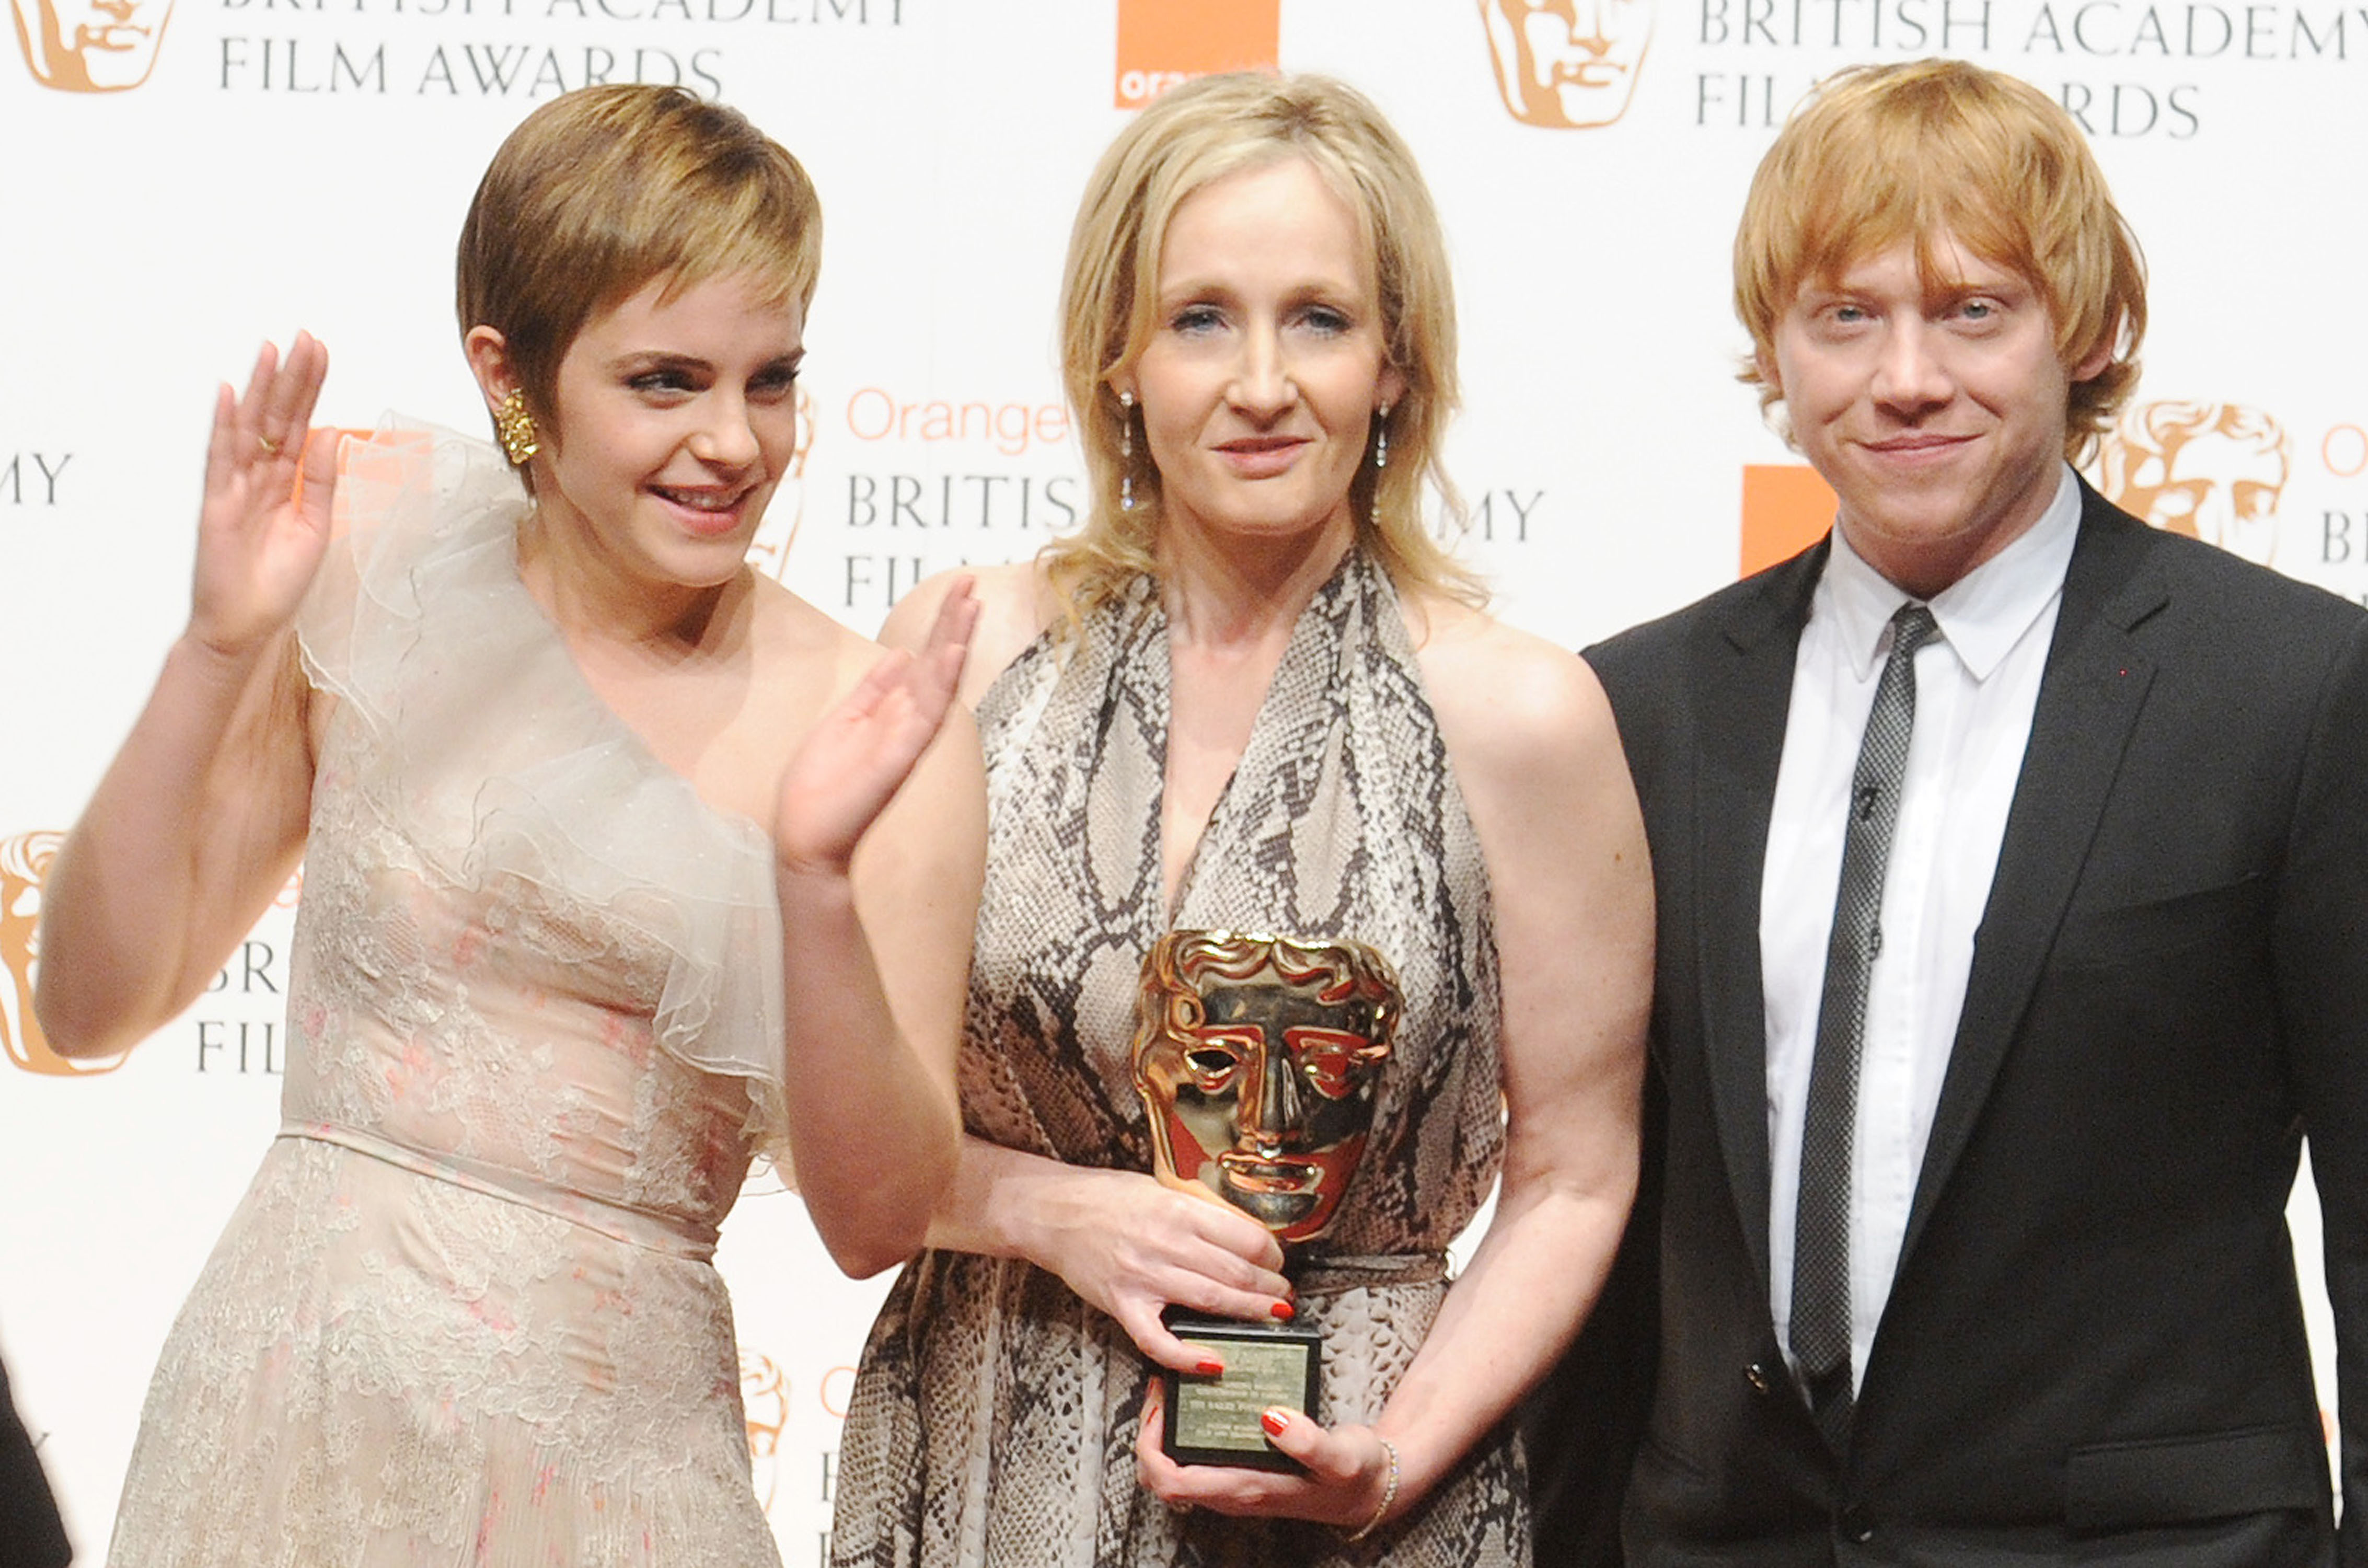 Emma Watson and J.K Rowling Orange British Academy Film Awards (BAFTAs) held at the Royal Opera House - Press Room London, England - 13.02.11  Featuring: Emma Watson and J.K Rowling Where: London, United Kingdom When: 13 Feb 2011 Credit: WENN